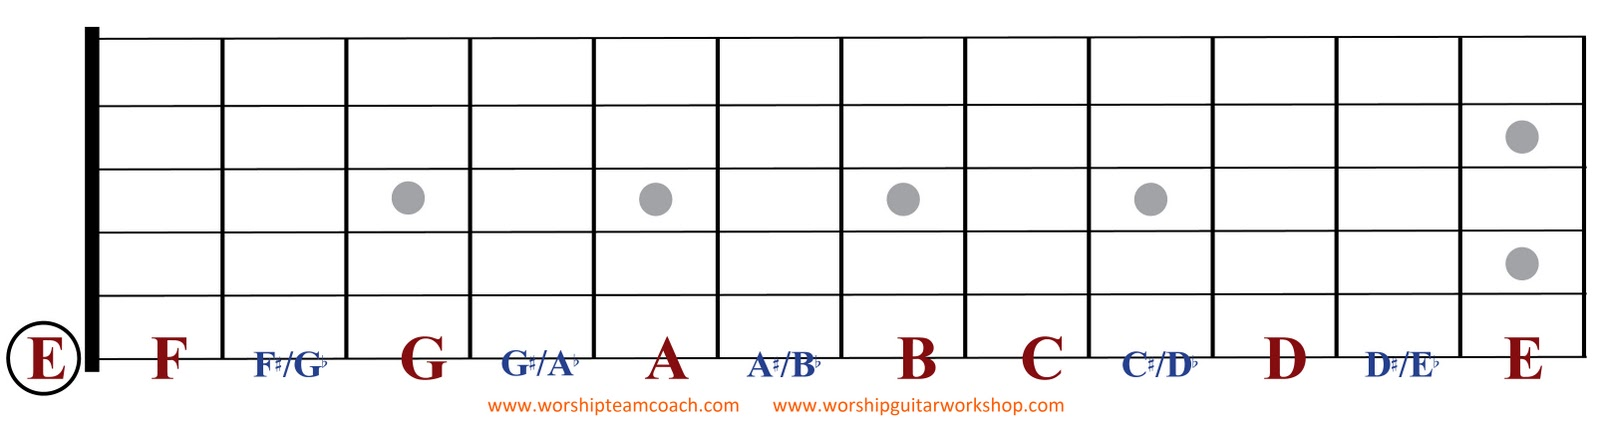 Blank Guitar Fretboard Chart Trends Hairstyle